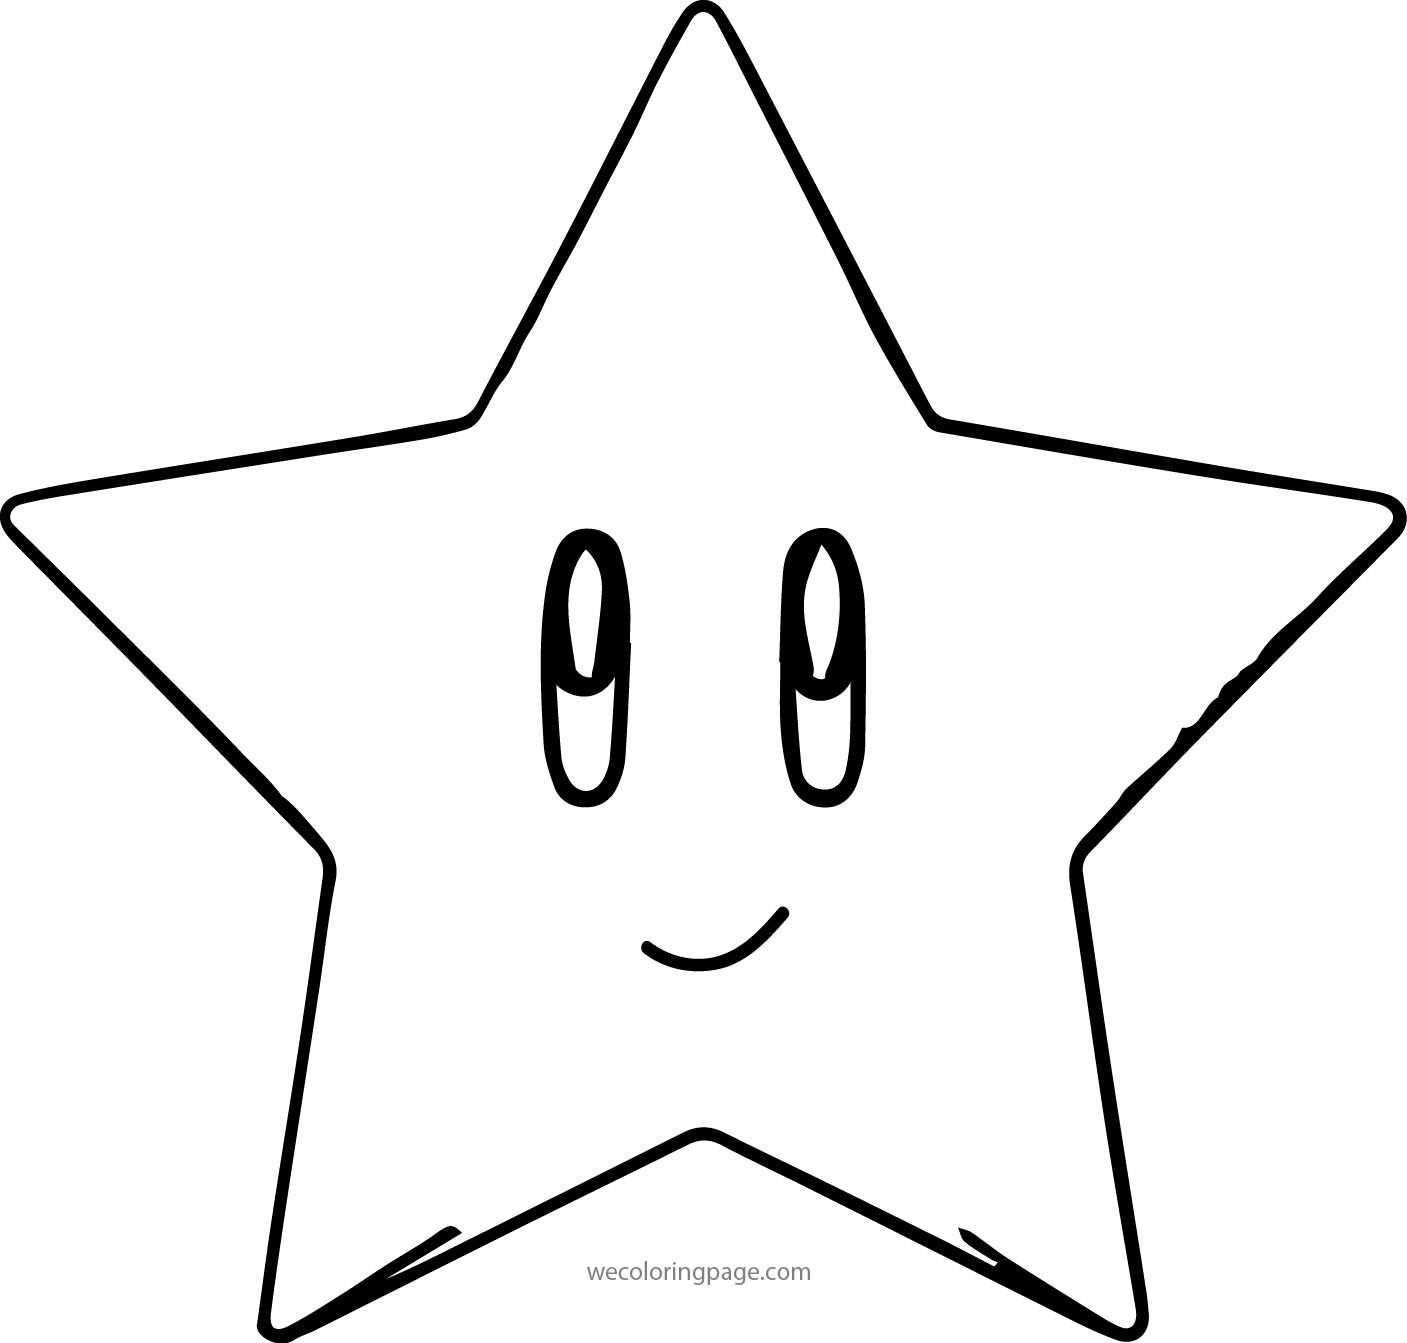 Awesome Mario Star Coloring Page Star Coloring Pages Mario Star